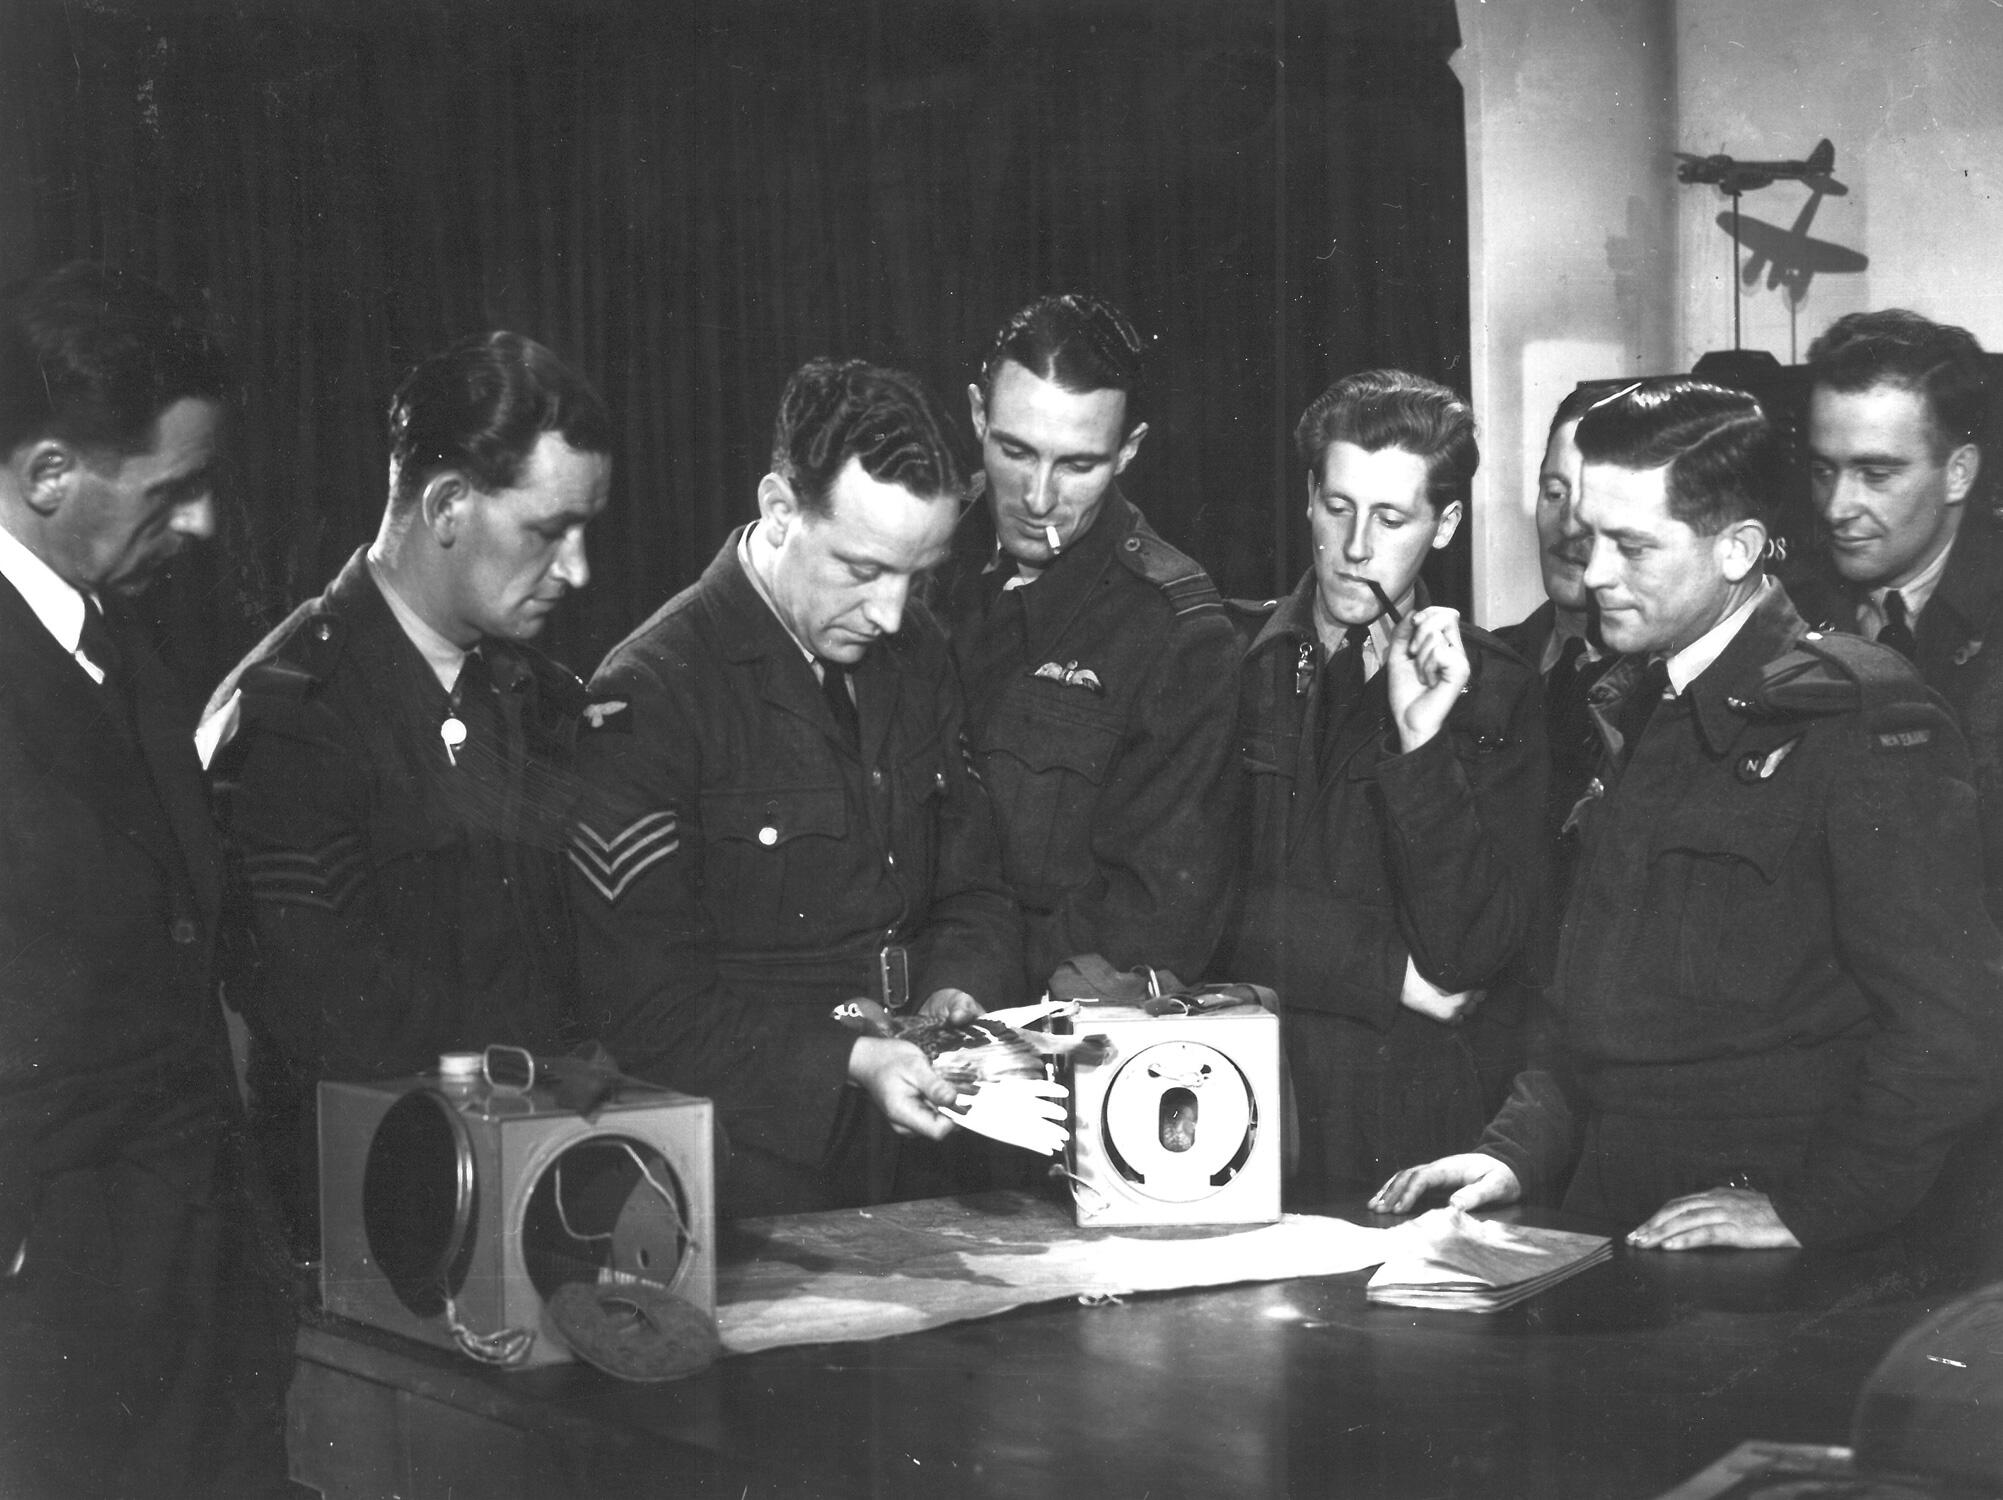 Many pigeons were dropped by aircrews to deliver messages to troops on the ground. Here, aircrews are trained in the correct deployment of the plucky birds. AR/BNPS